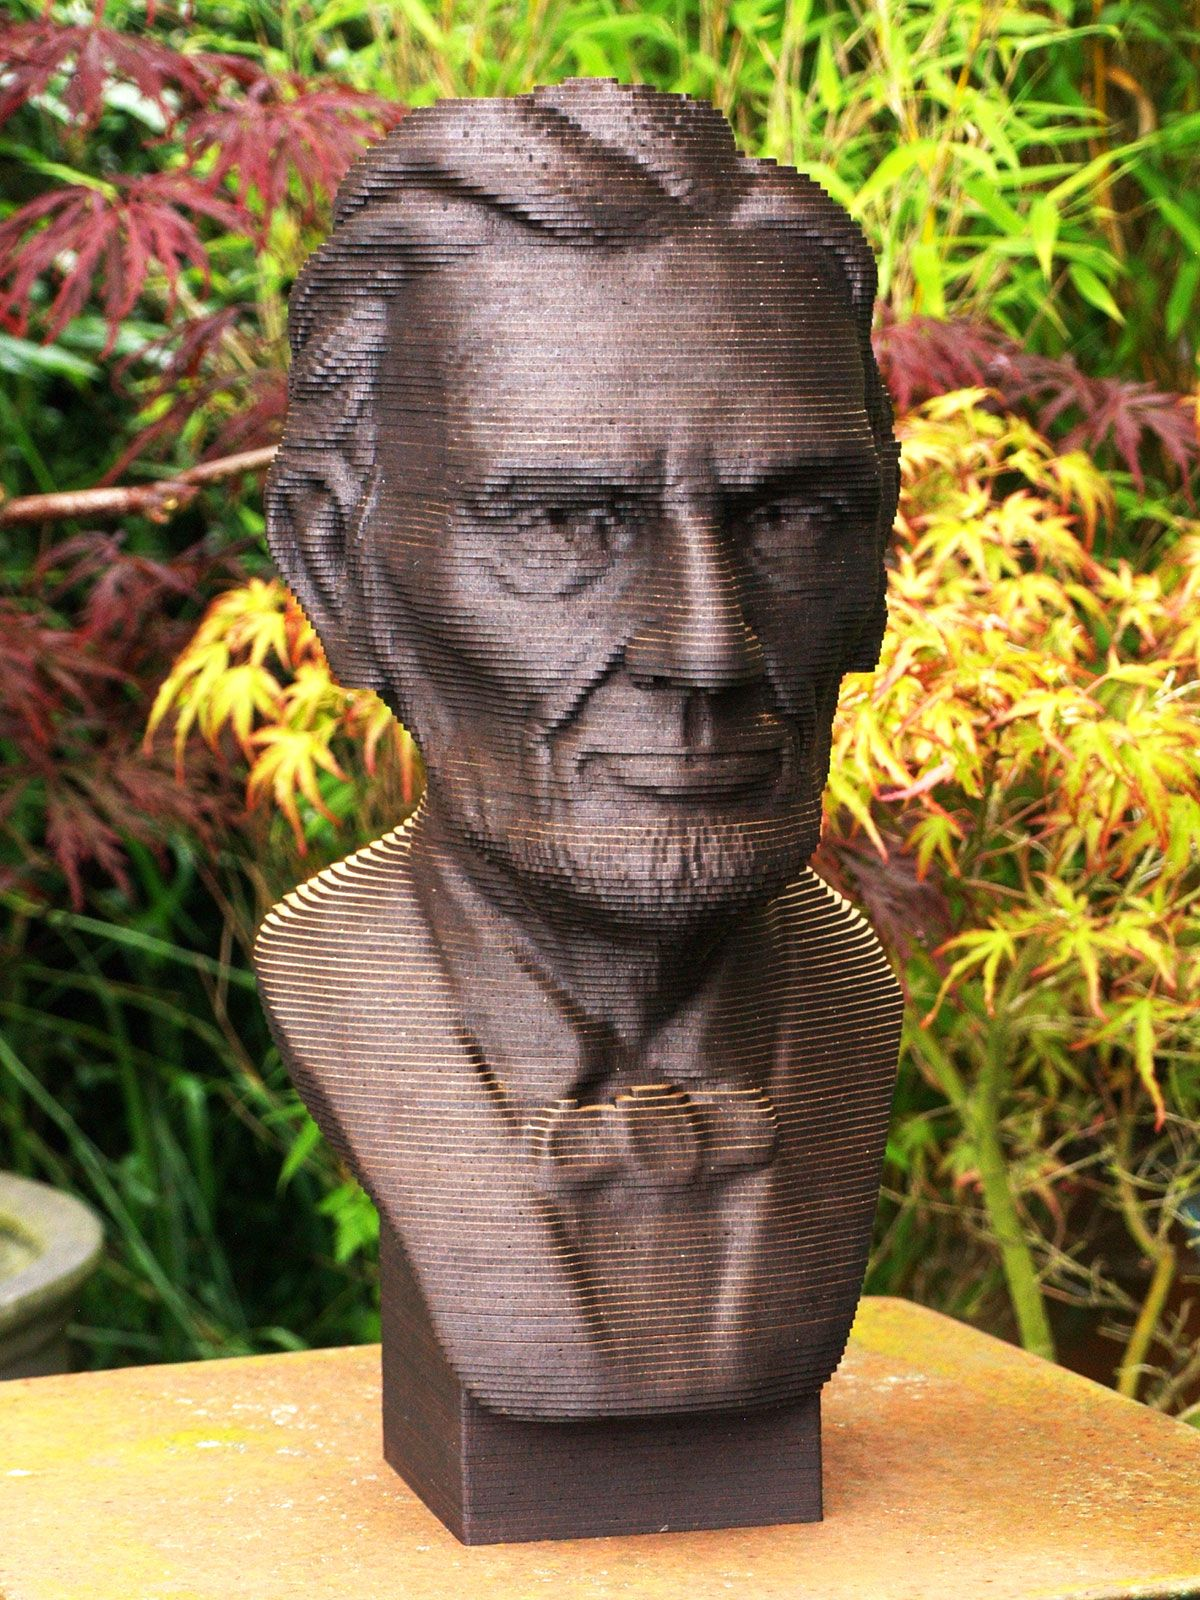 Although Abe is made of almost 200 slices of 2mm laser-cut wood, it almost looks as though he's made of bronze ...